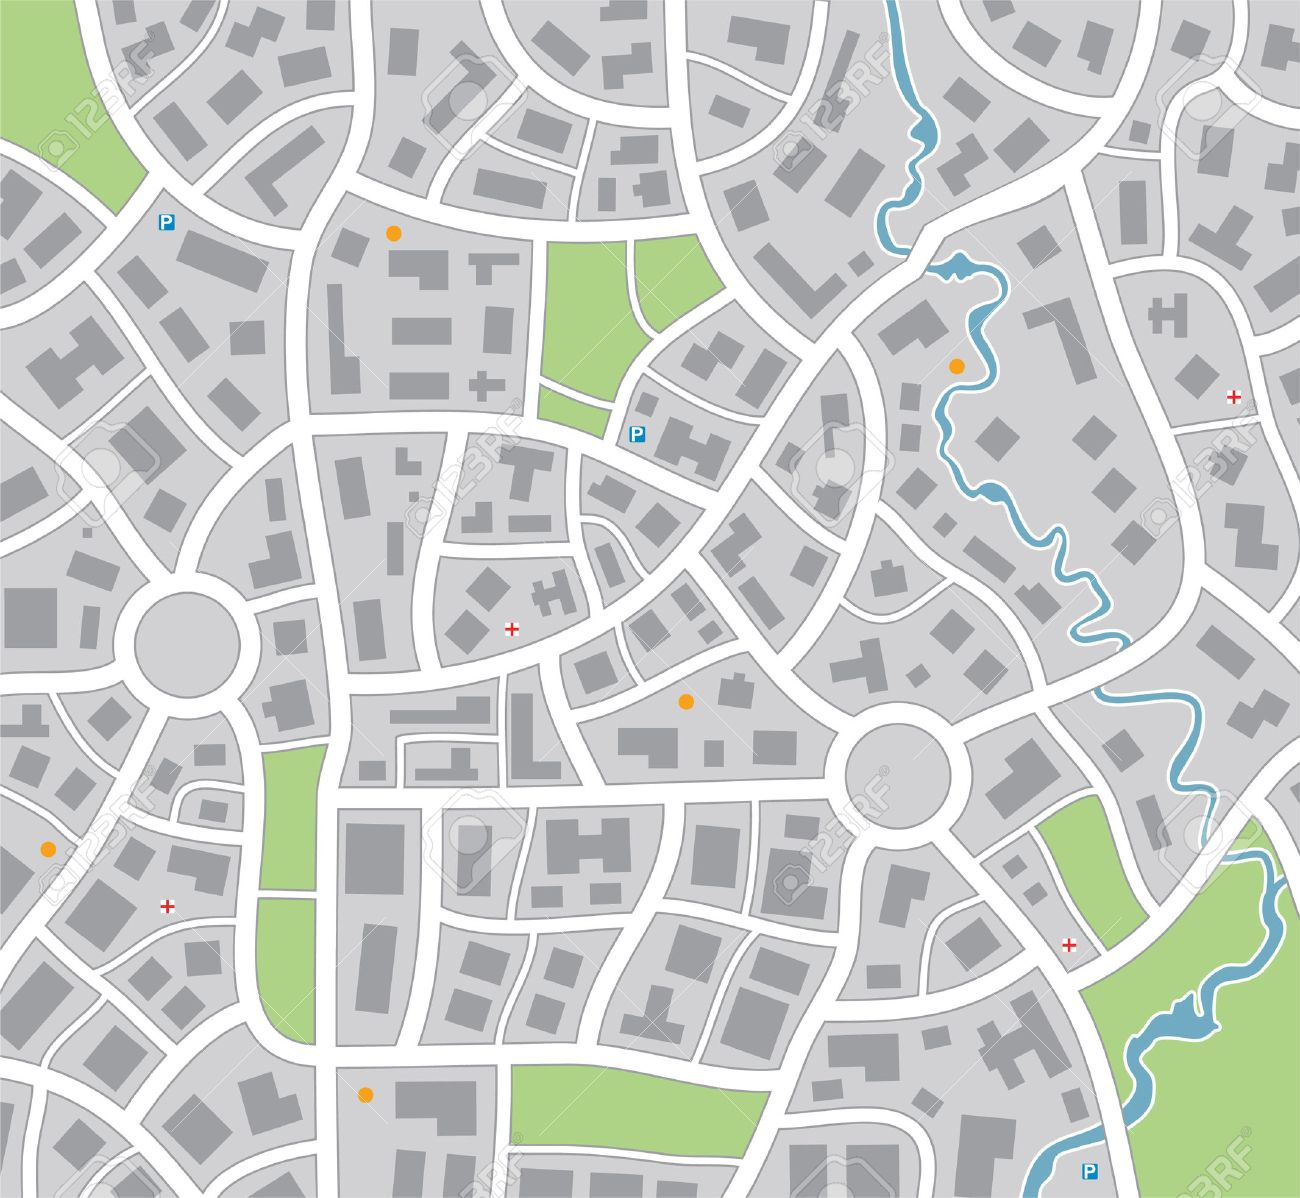 Blank Street Map Template Image Gallery Of Blank Street Map - Free us street map download